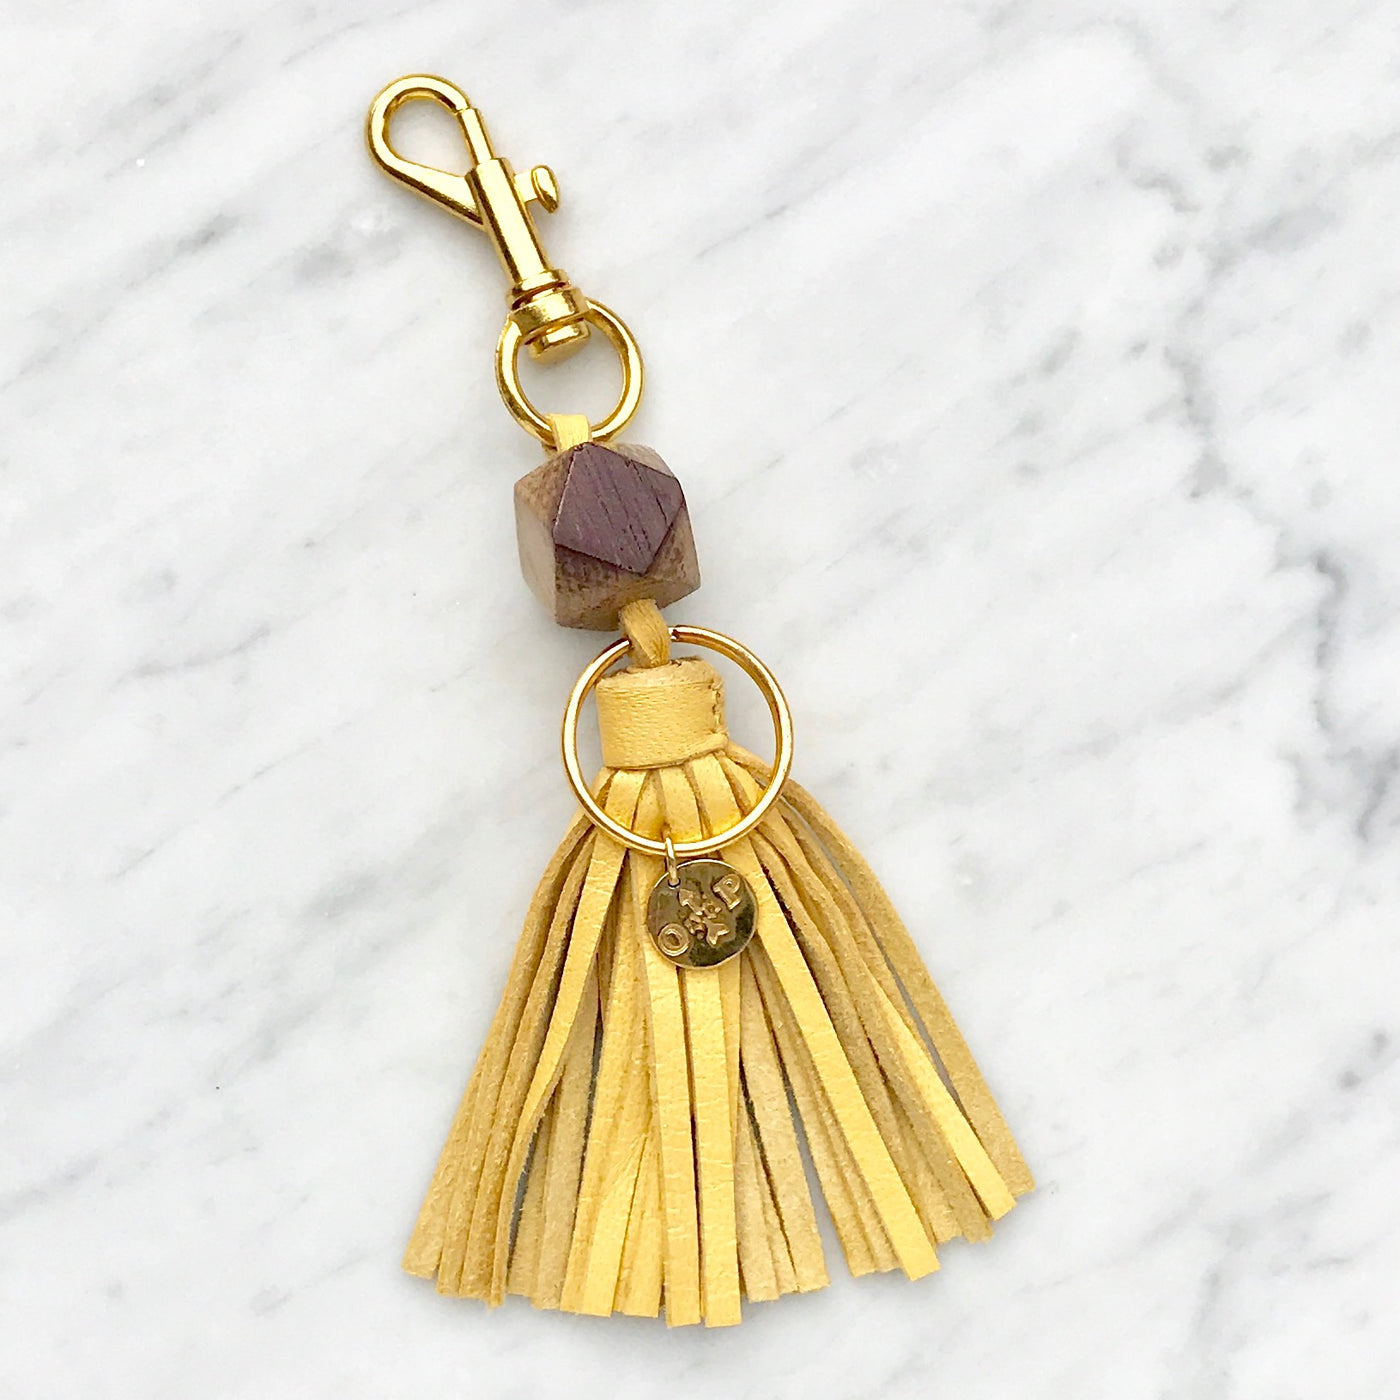 Chardonnay Wine Barrel Tassel Keychain - Olive and Poppy